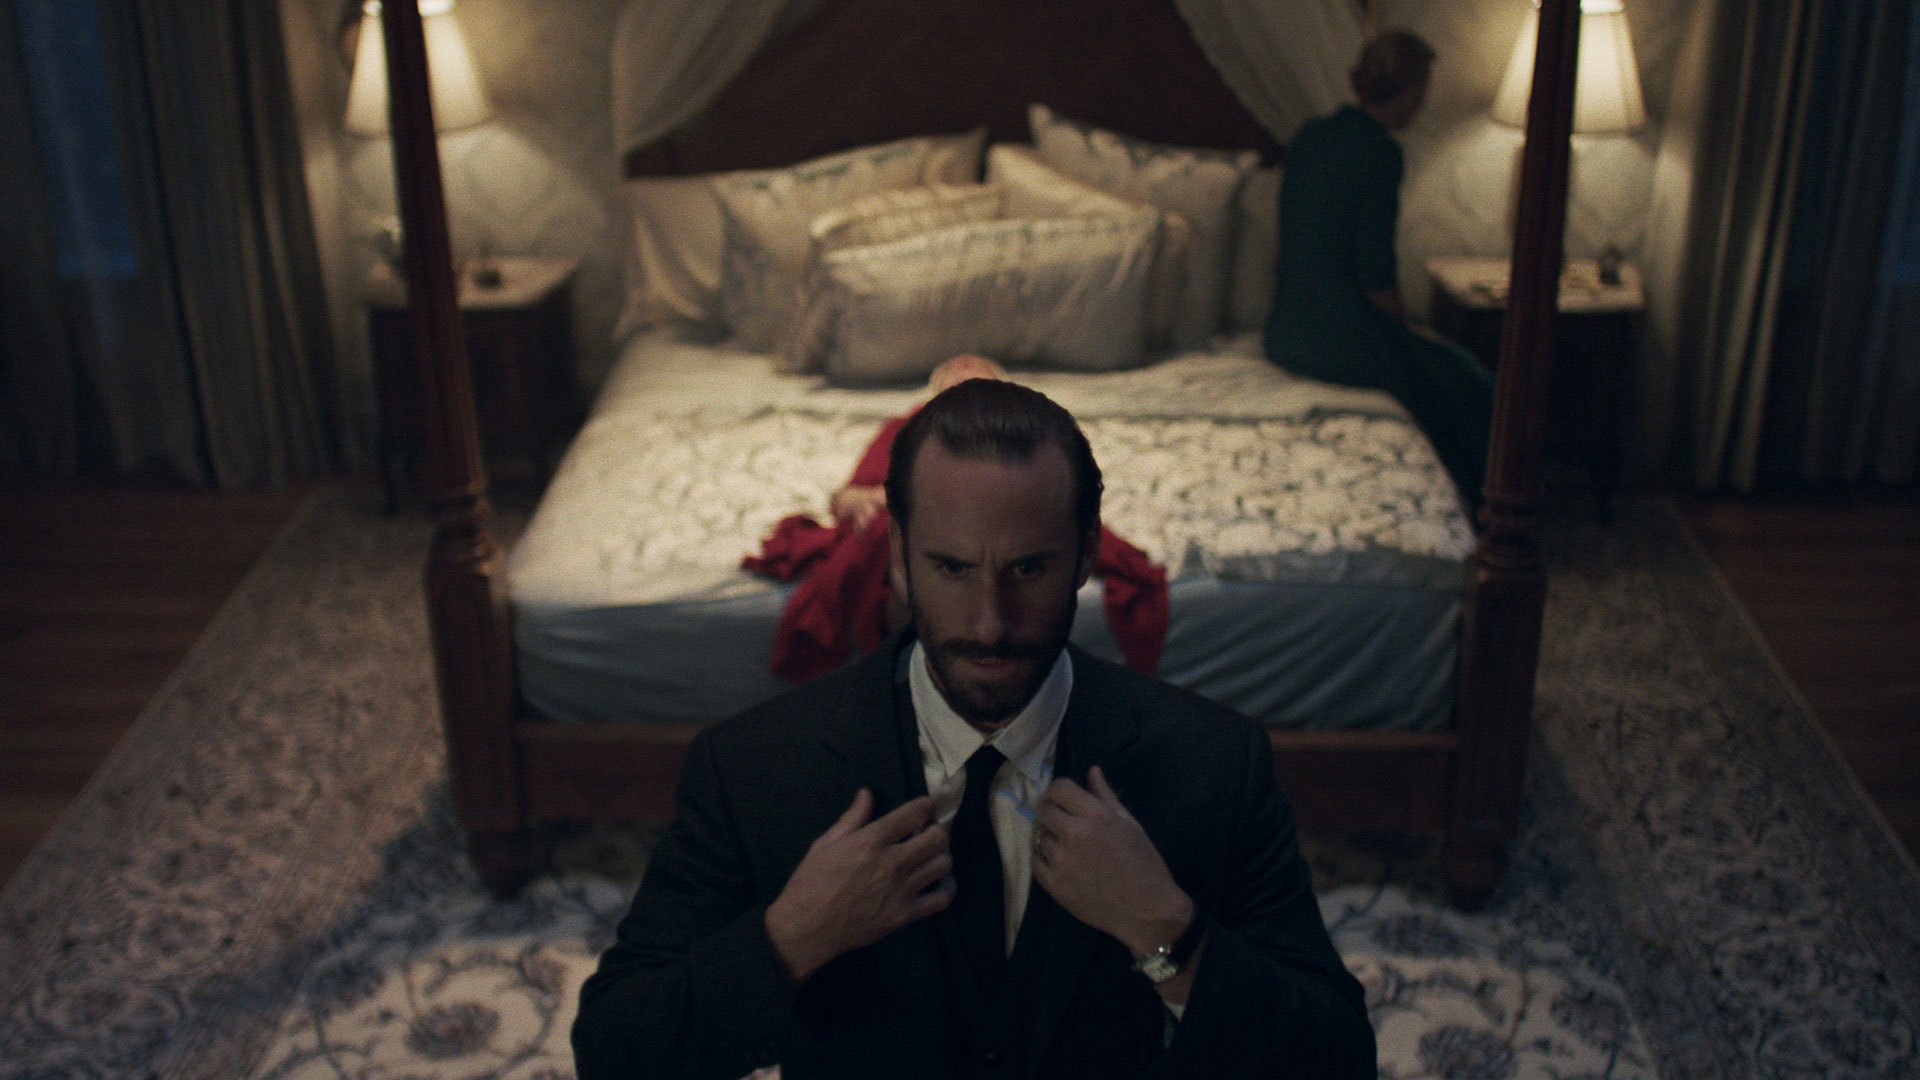 Kommandør Fred Waterford (Joseph Fiennes) er en enigmatisk skikkelse. (Foto: Take Five/Hulu)